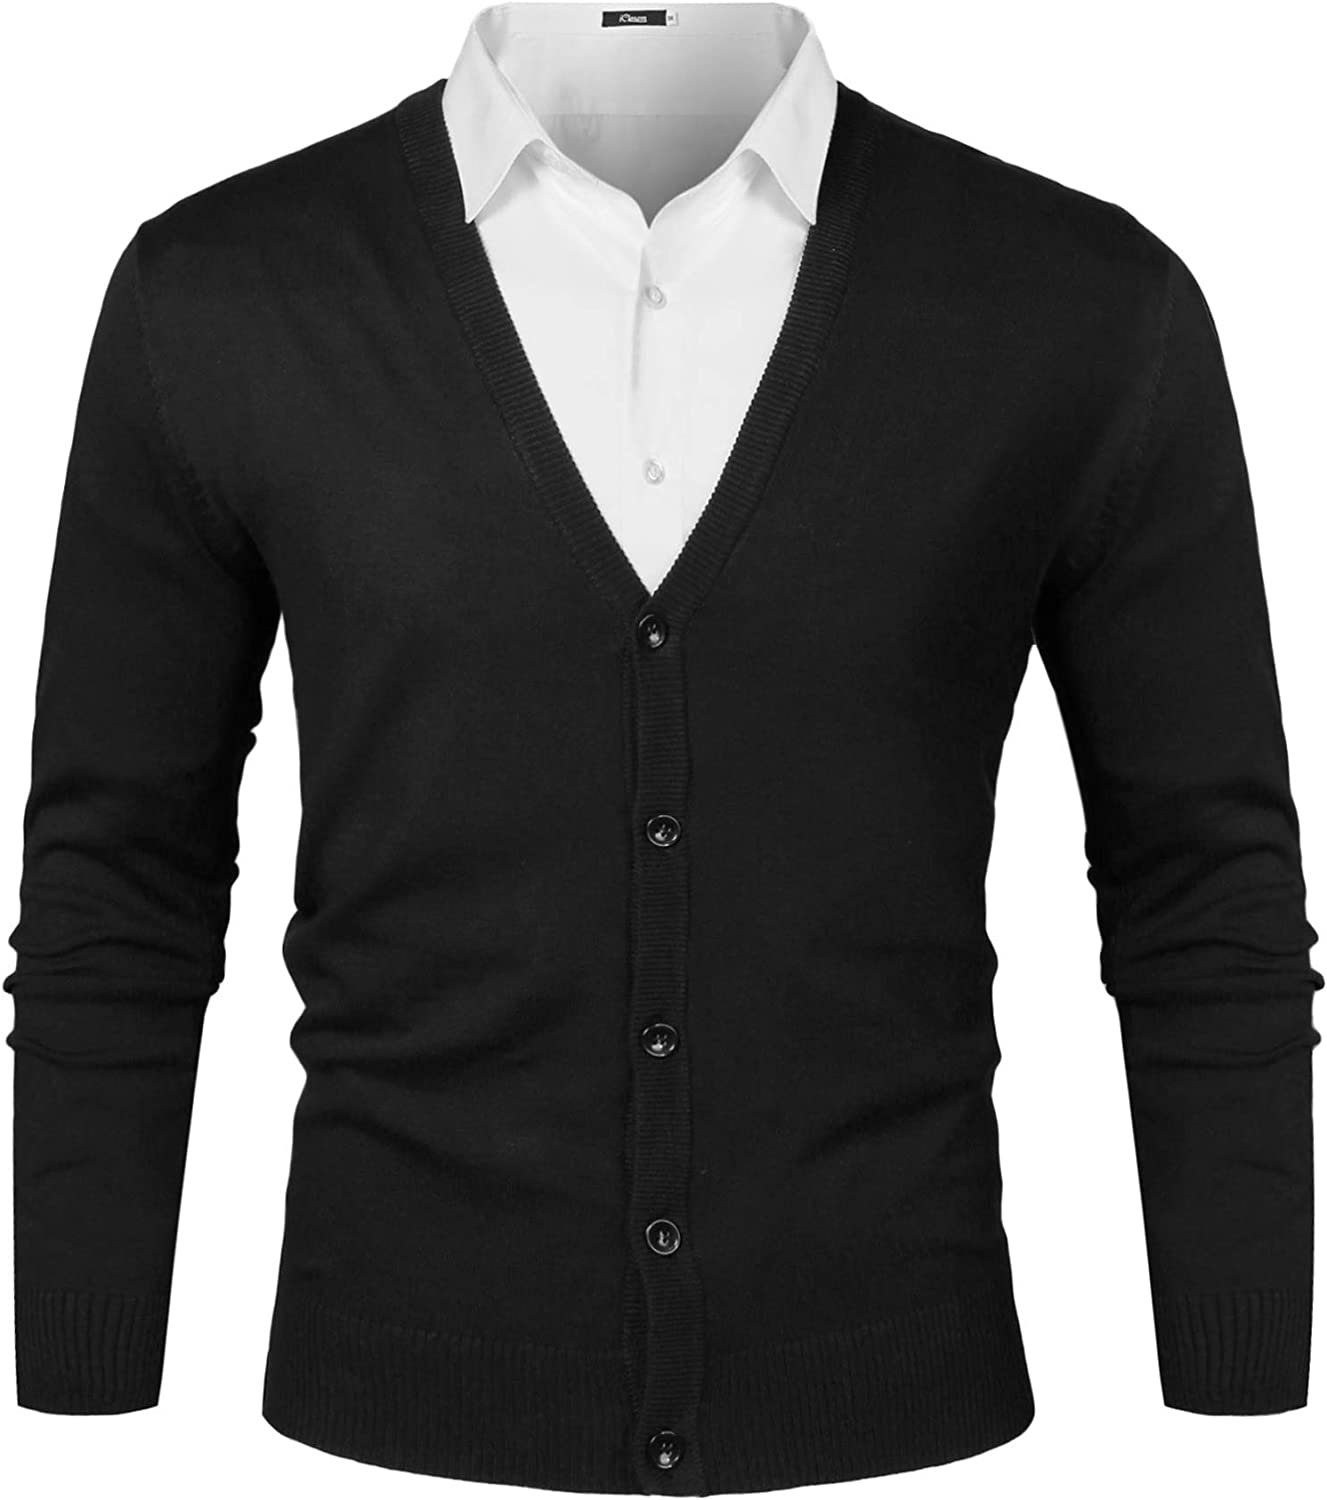 iClosam Mens V-Neck Slim Fit Knitted Button Down Cardigan Sweater with Ribbing Edge